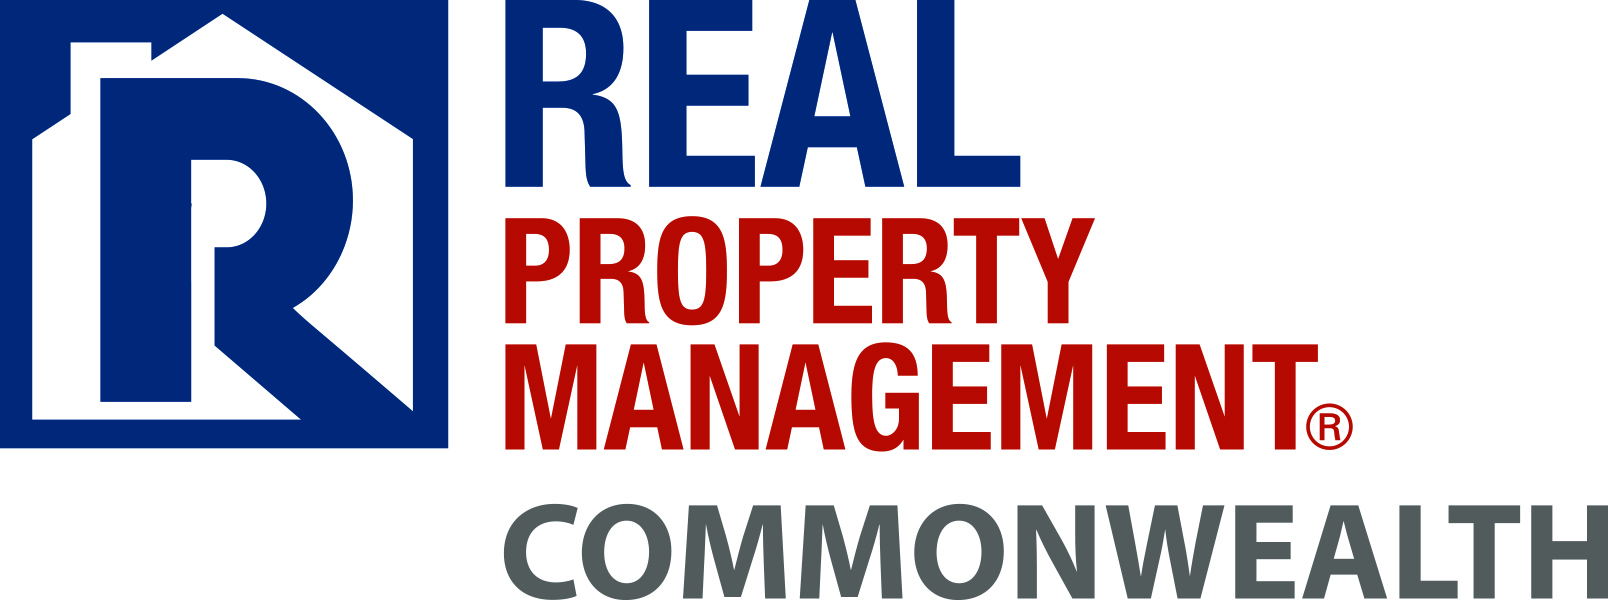 >Real Property Management Commonwealth. The trusted leader for professional property management services.